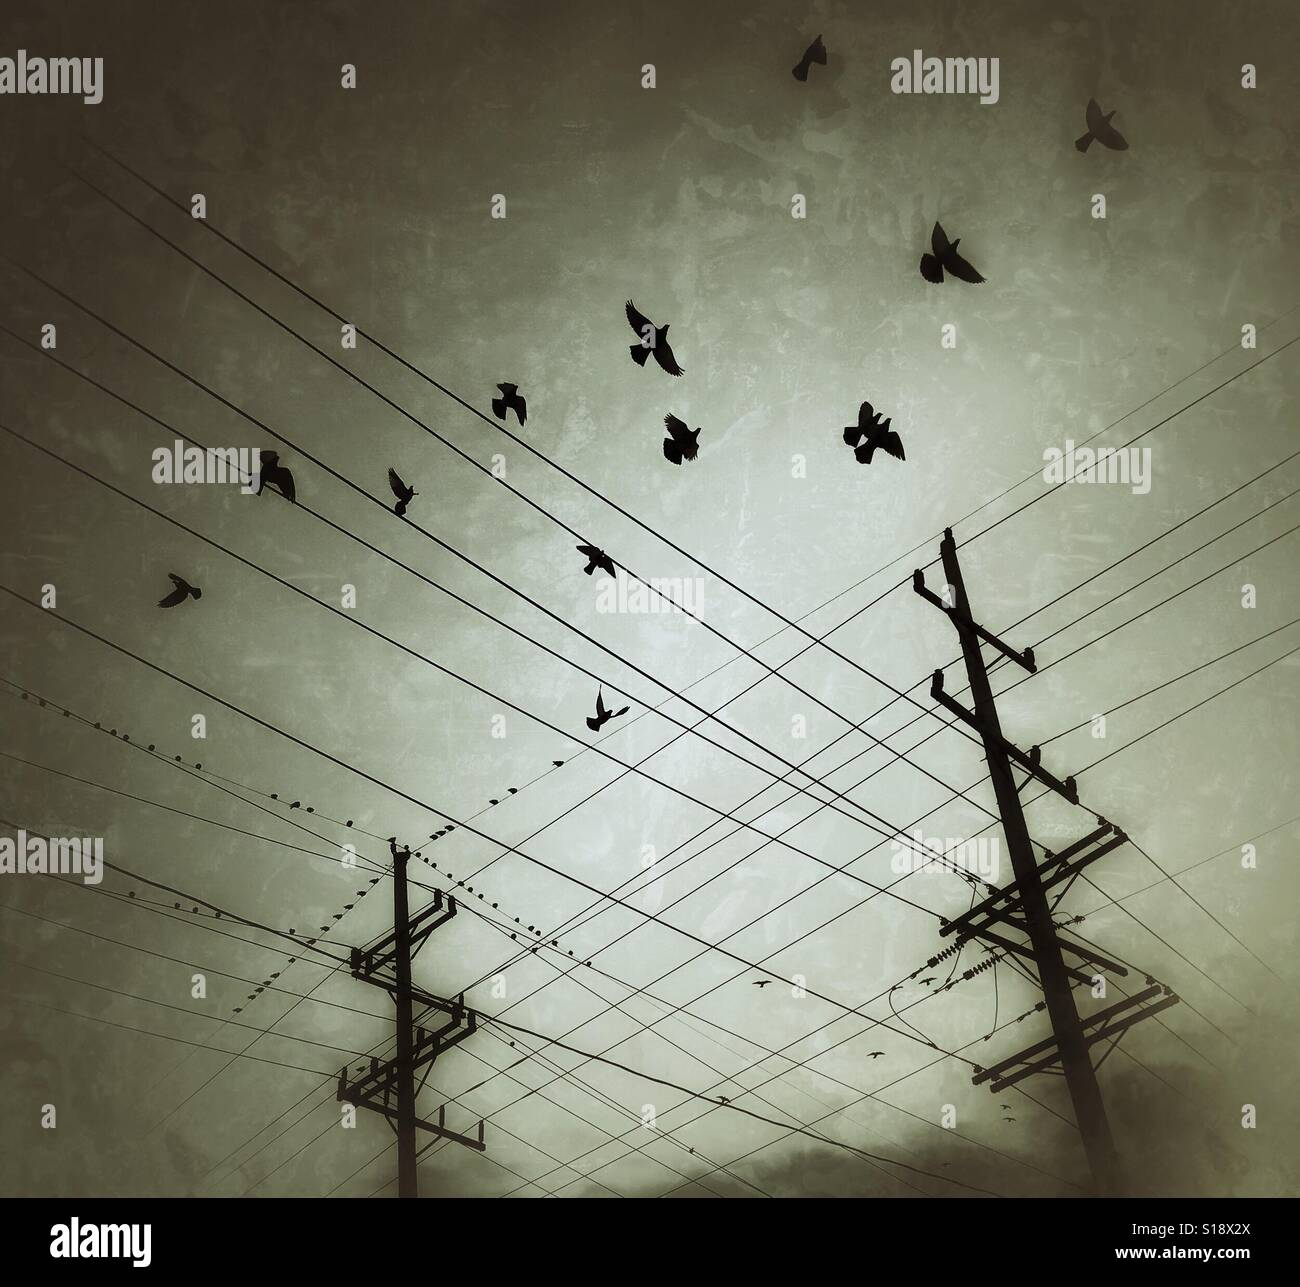 Birds and telephone lines - Stock Image